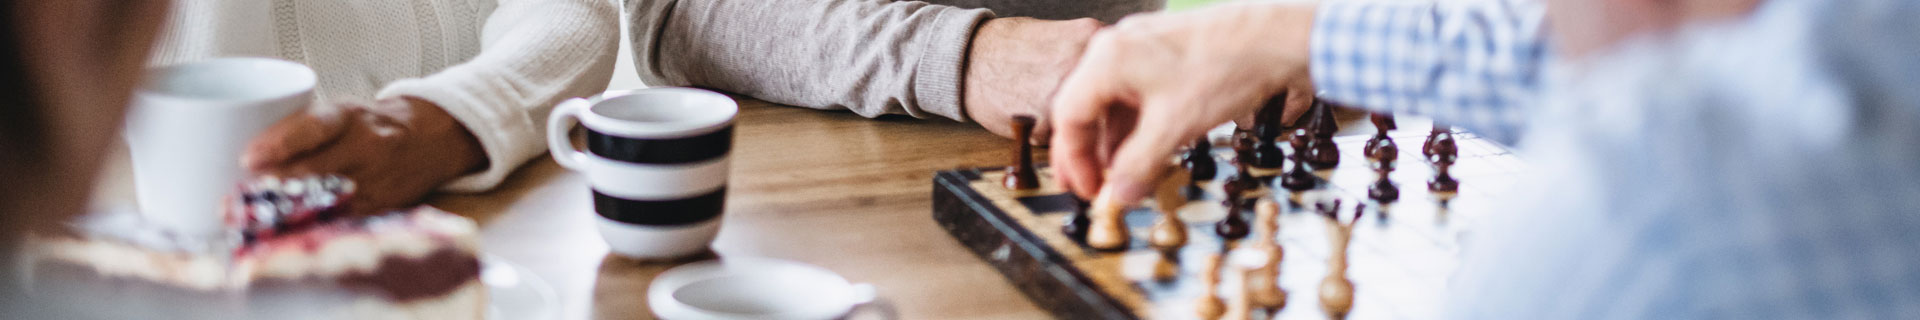 seniors play chess at the table while drinking coffee